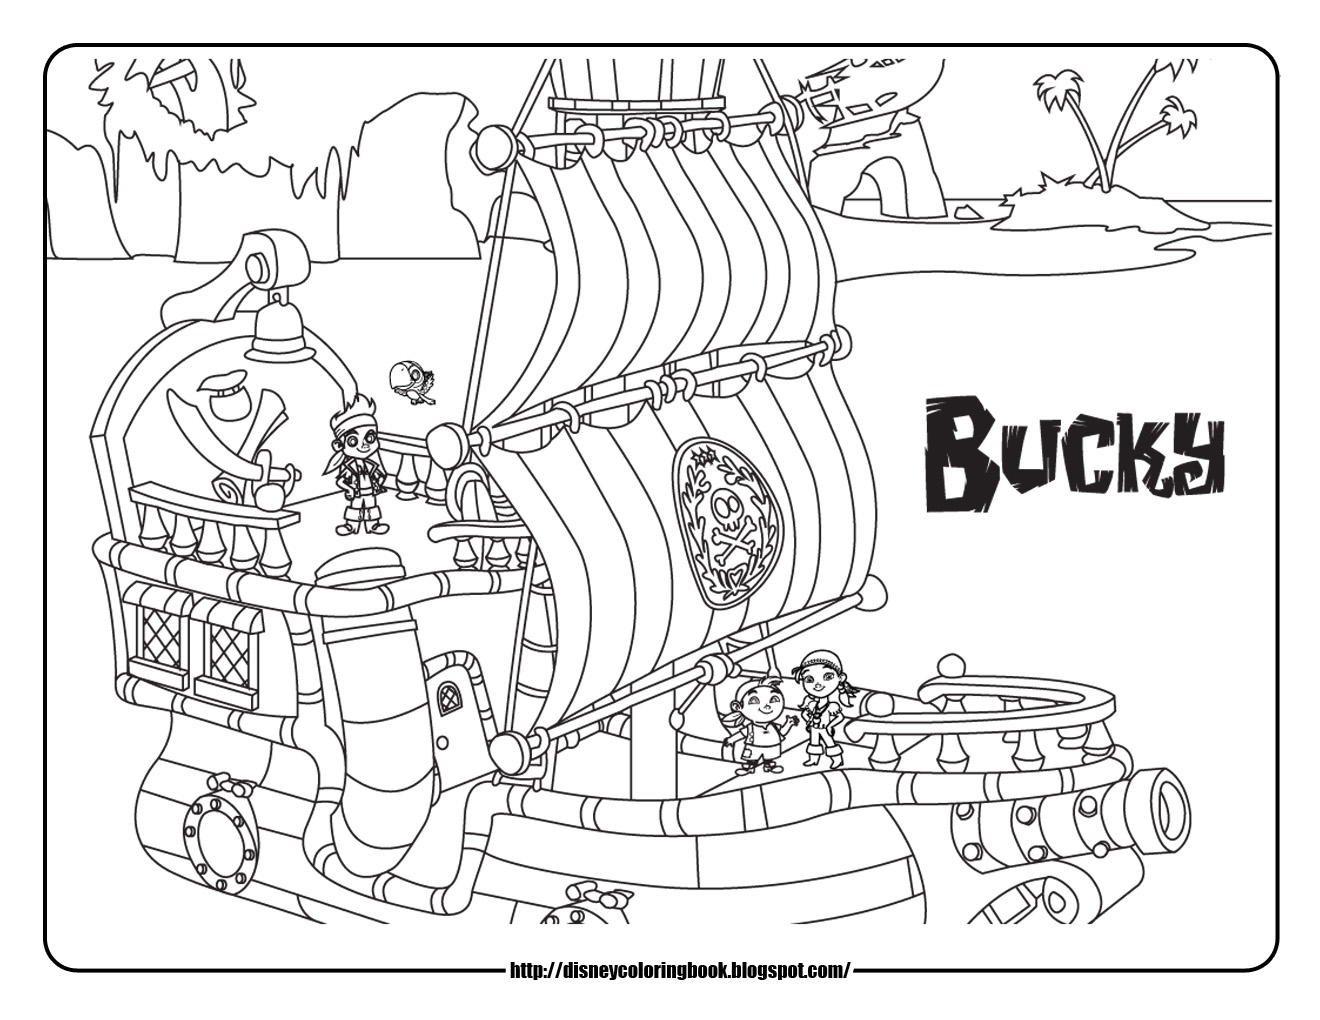 1320x1020 Jake Neverland Pirates Coloring Pages And The Never Land Pirate